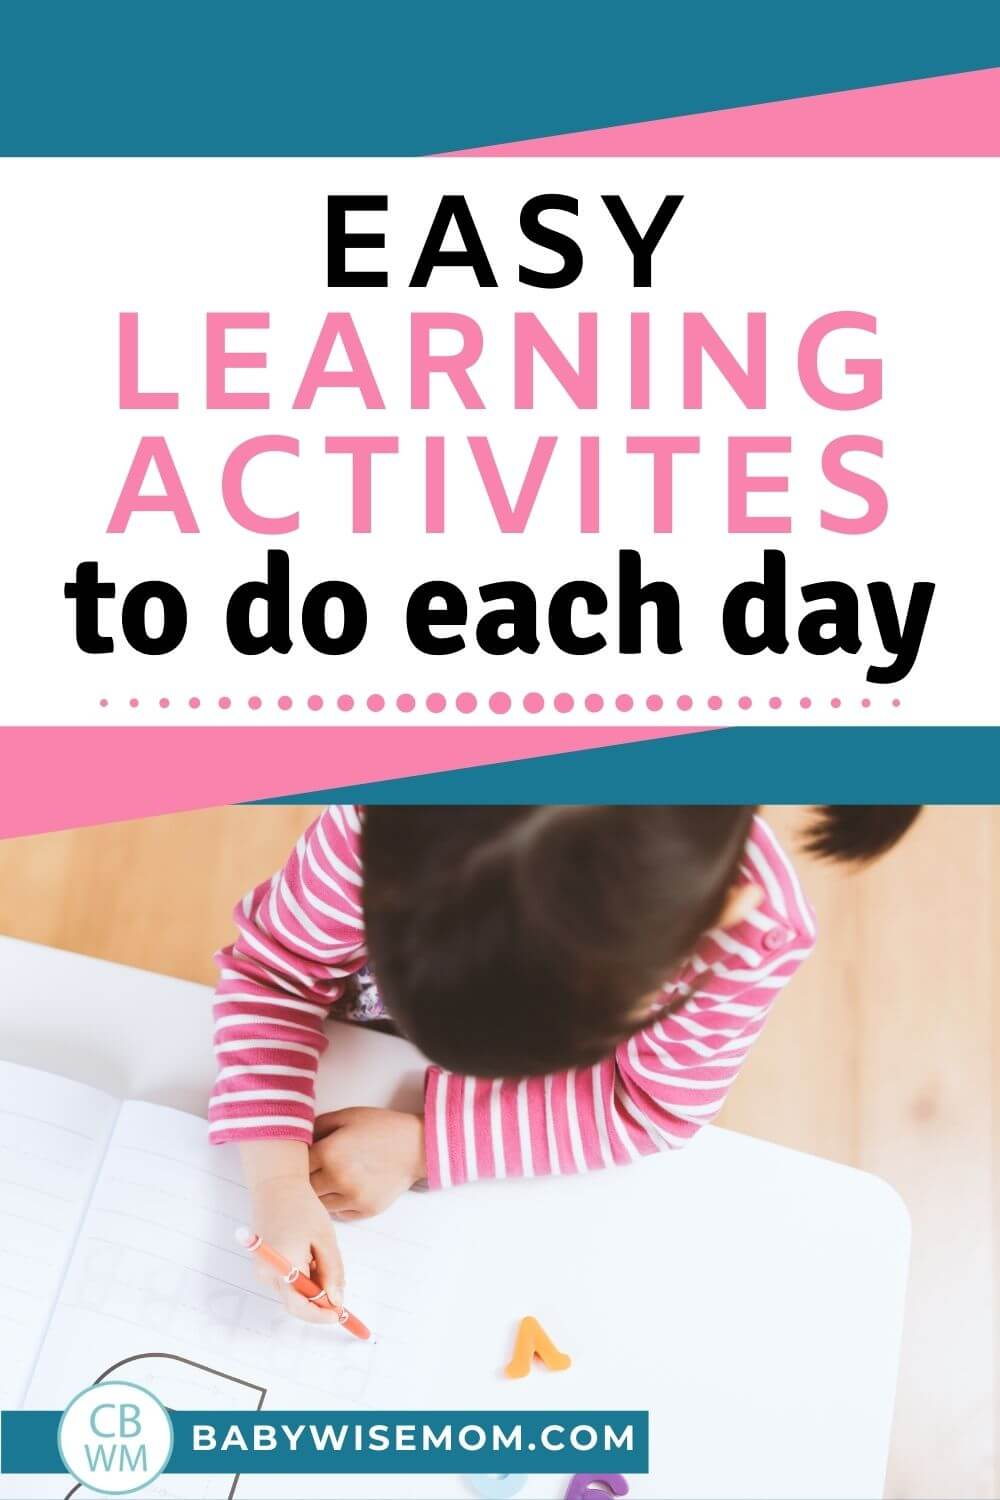 Easy learning activities to do each day pinnable image